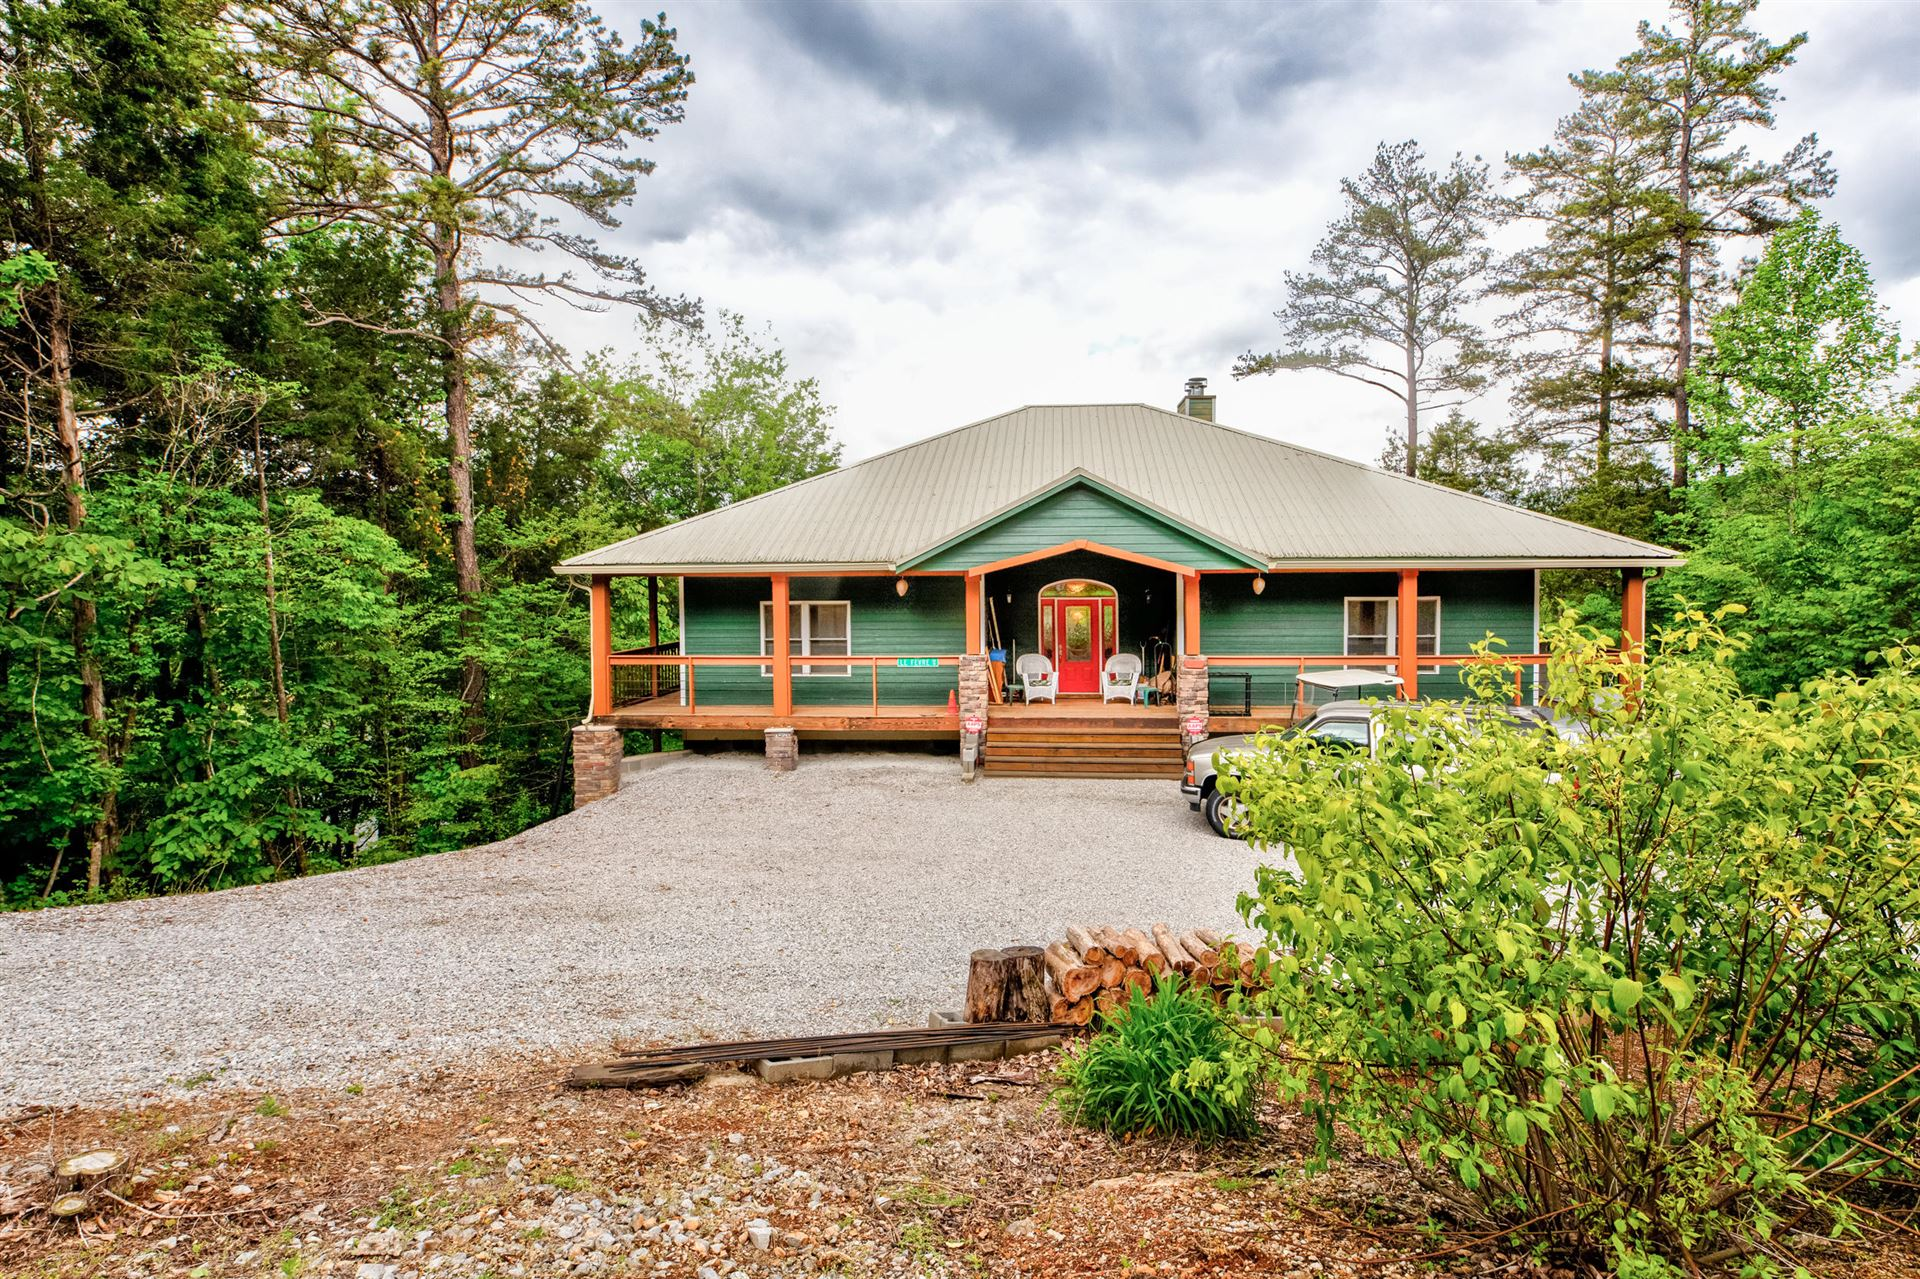 Photo for 501 E Norris Point Rd, LaFollette, TN 37766 (MLS # 1151886)